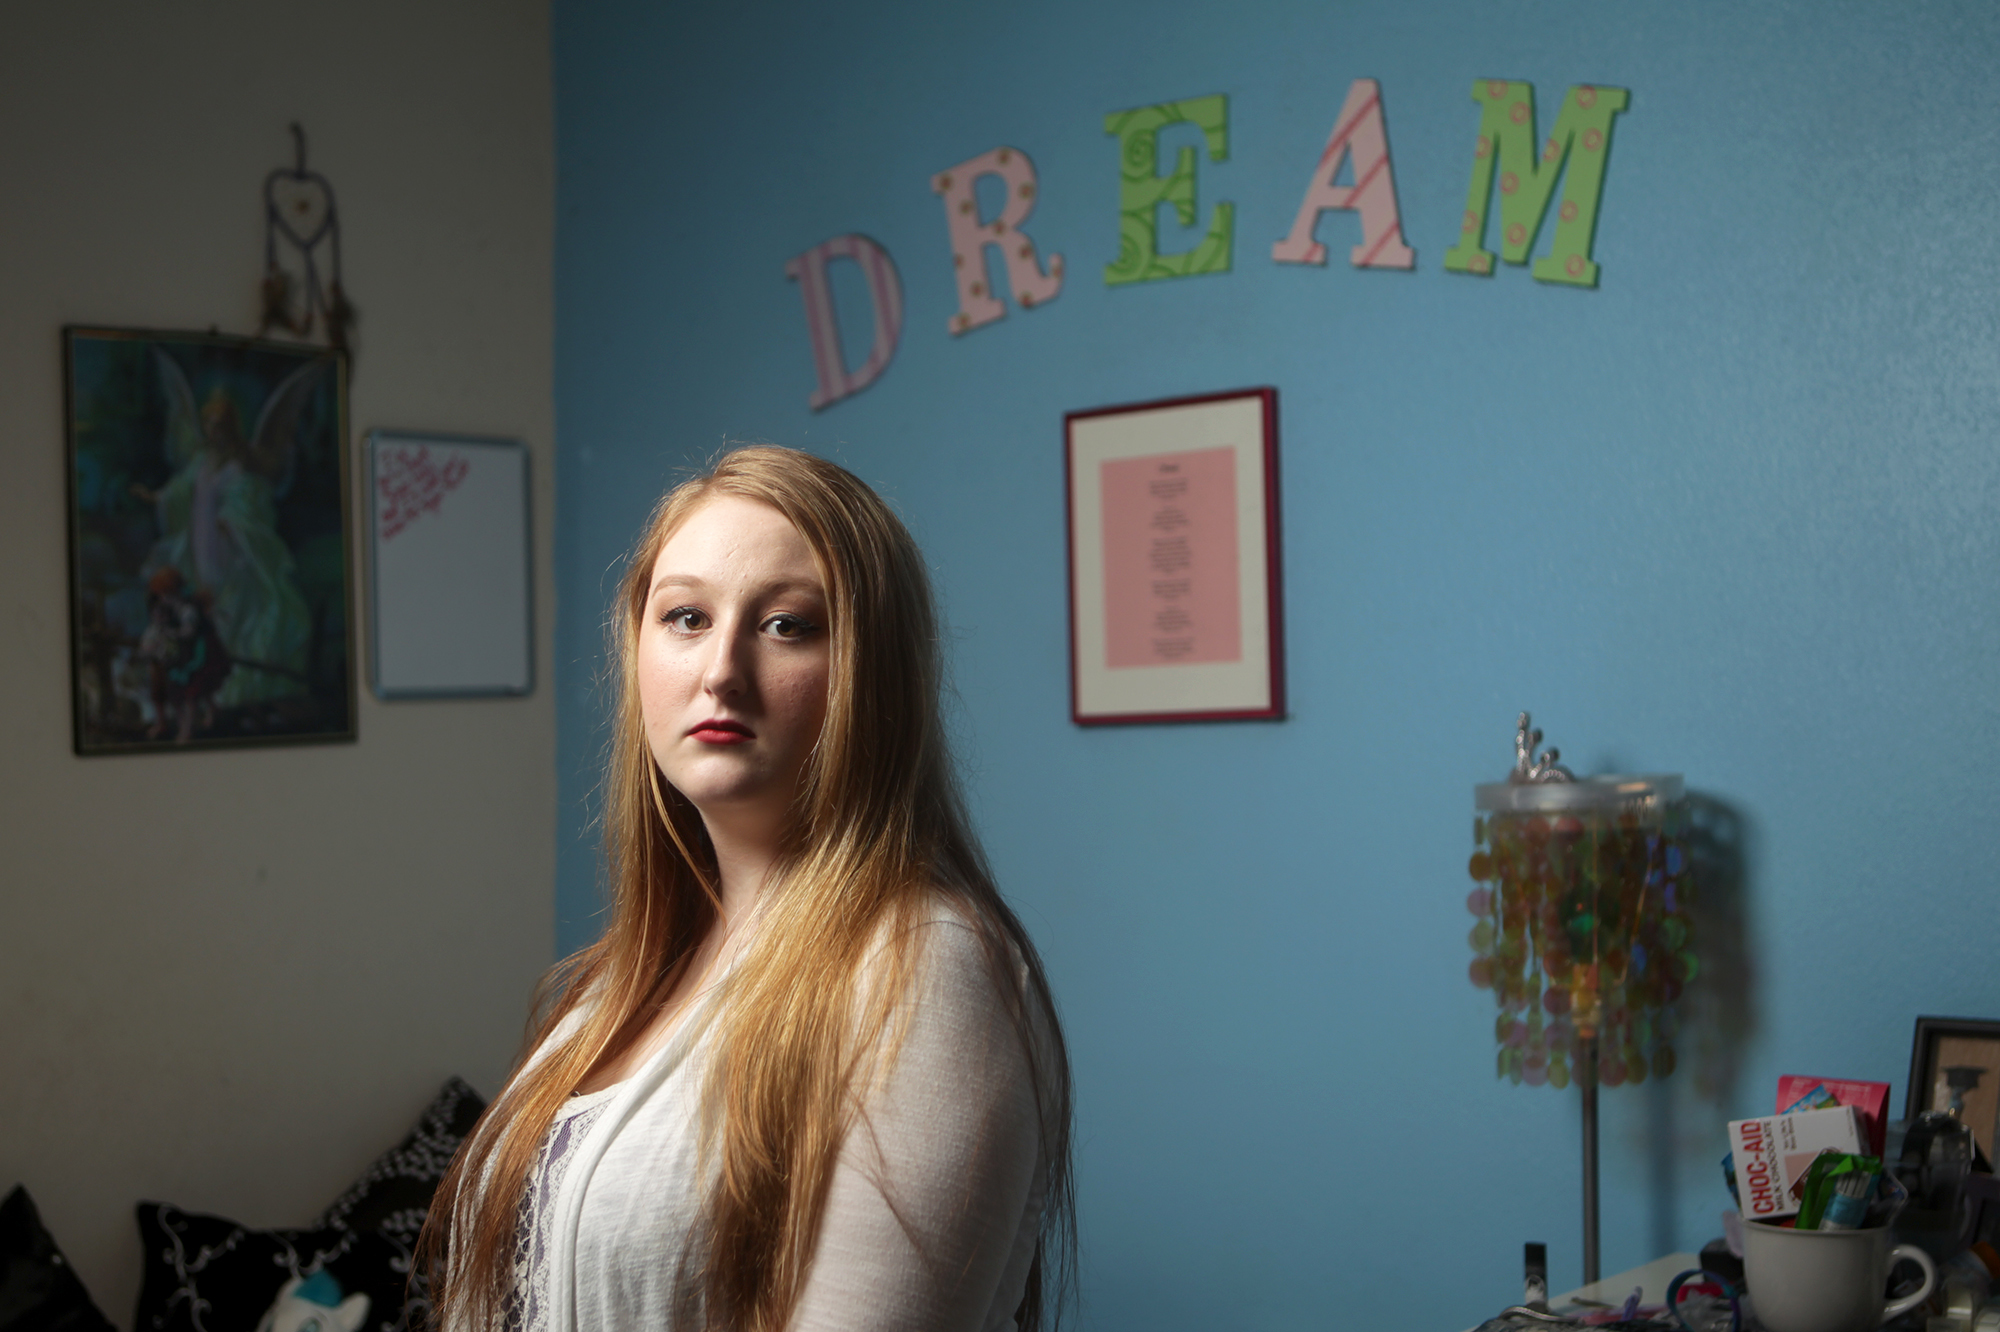 Depressed Teen's Struggle To Find Mental Health Care In Rural California